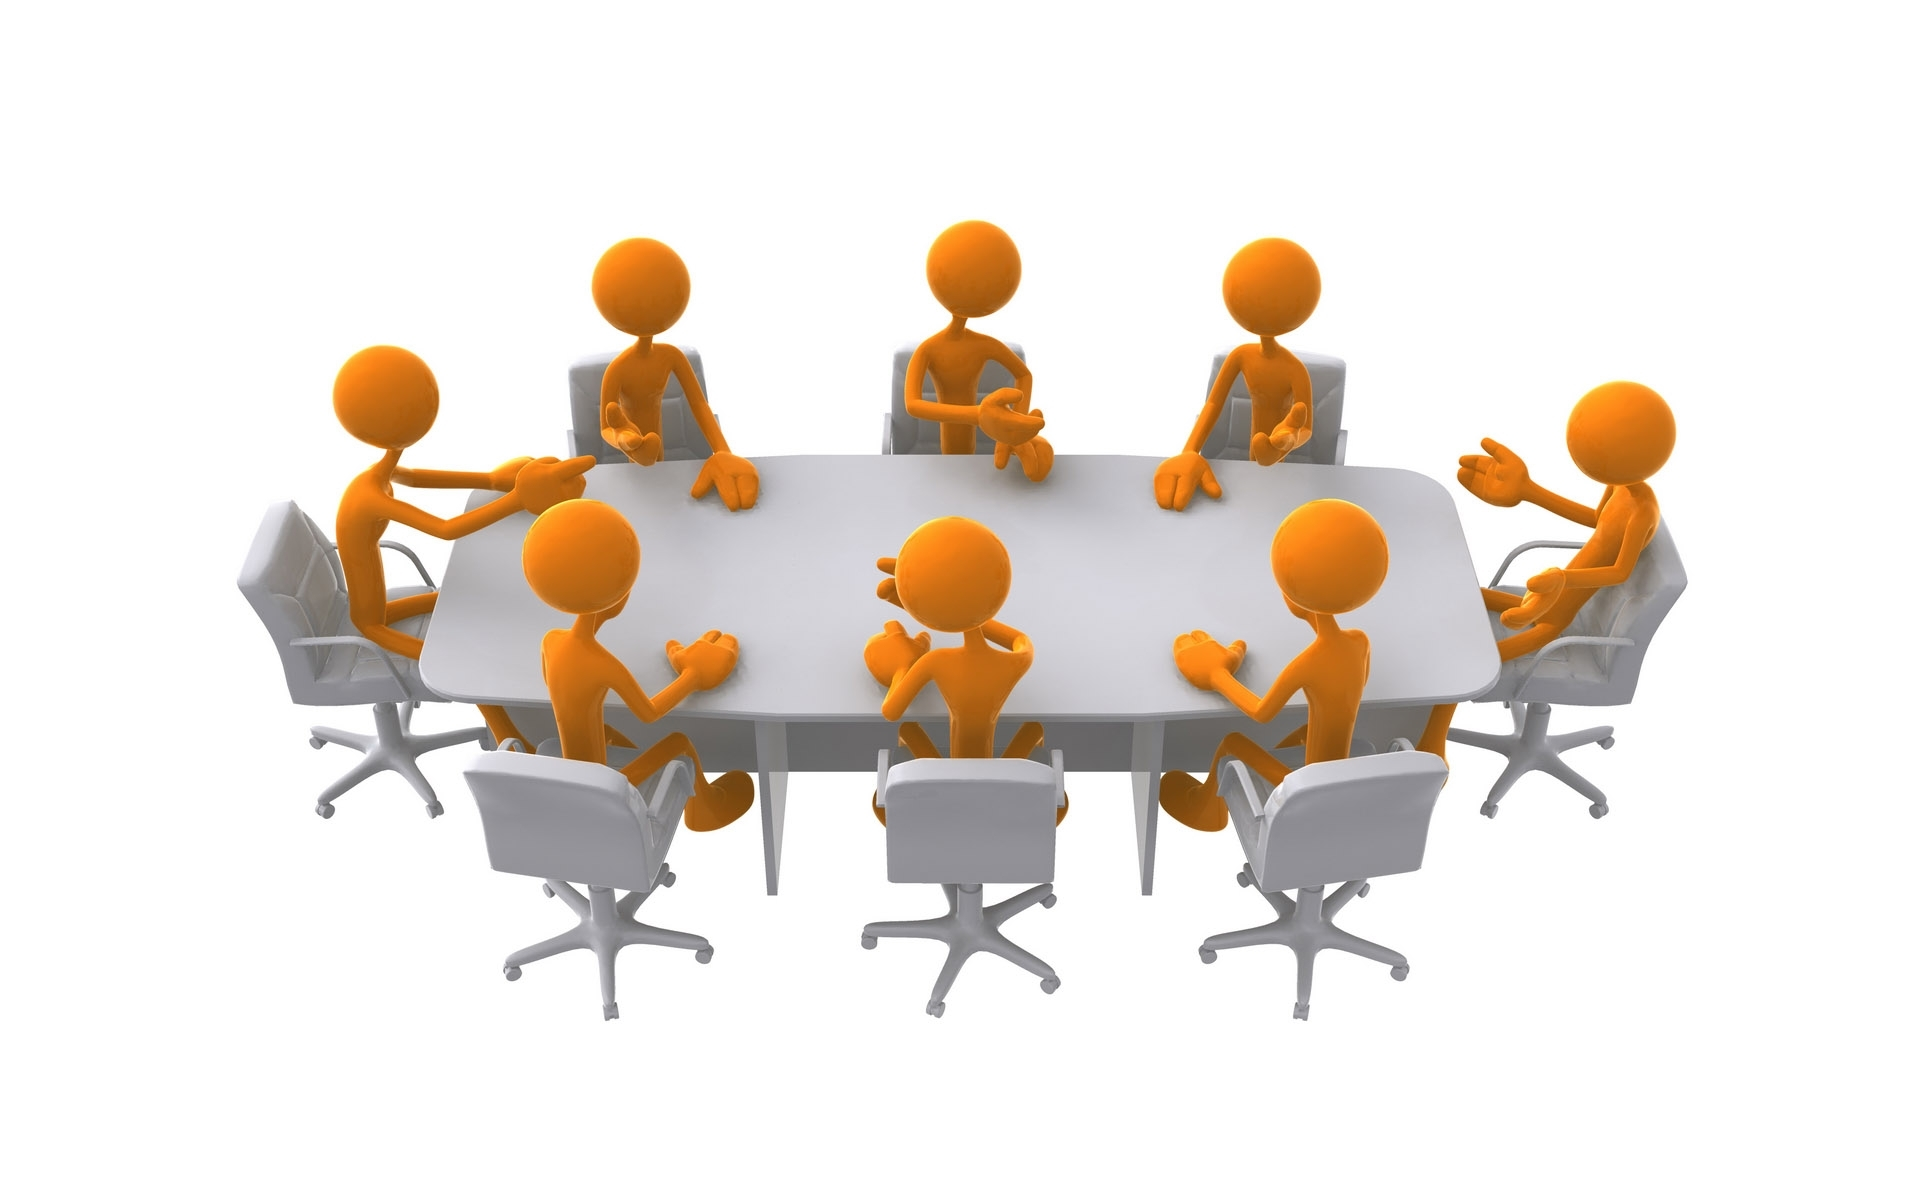 Club clipart student leader Clipart Meeting Leadership Download Leadership